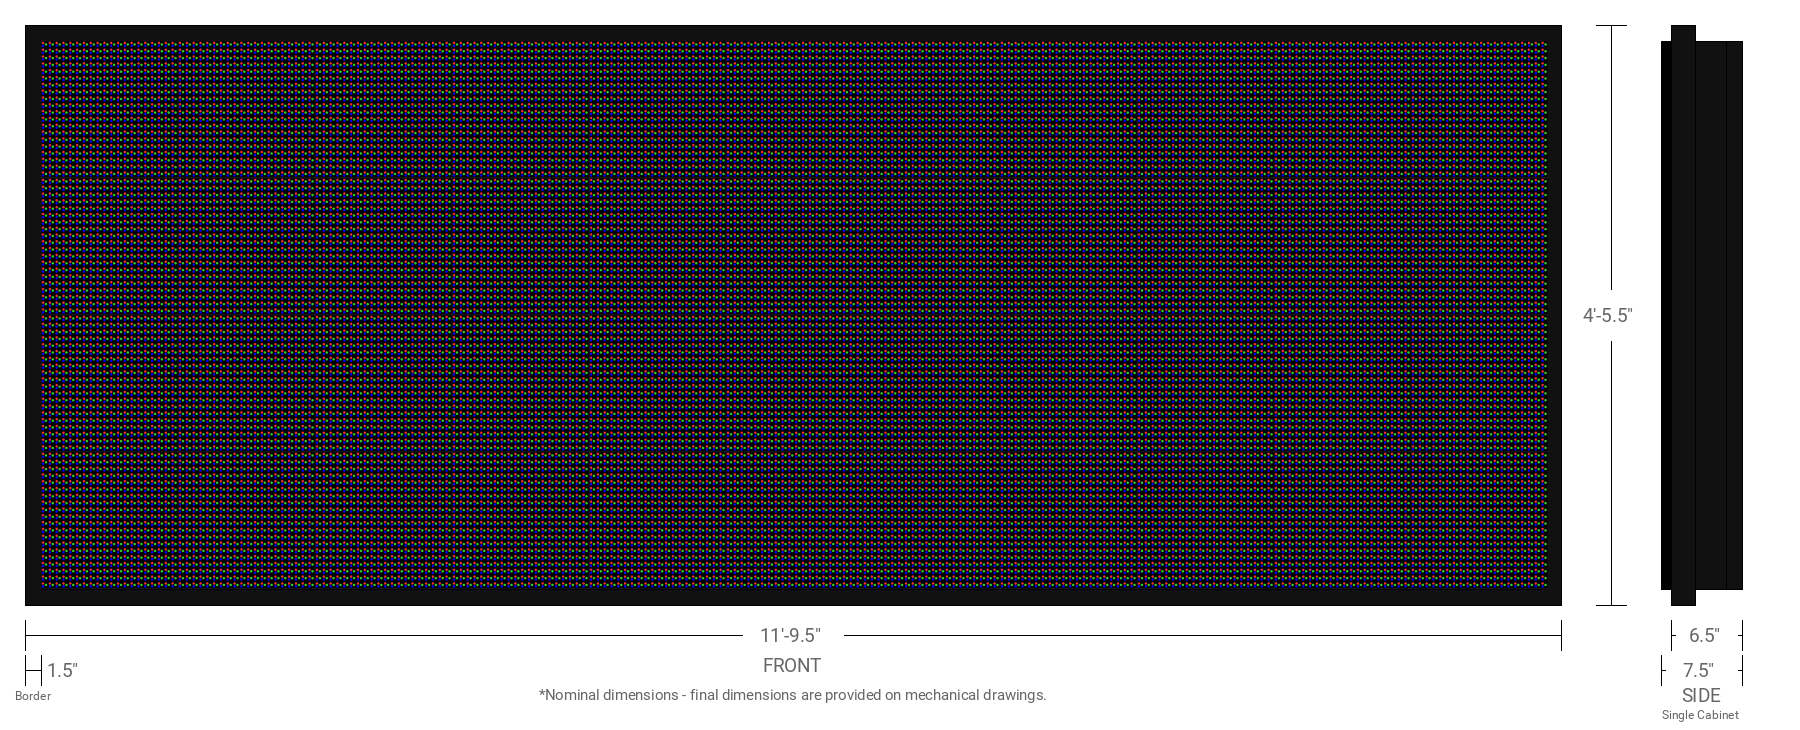 Aurora 16mm 80x220 Double Sided Full Color LED Display